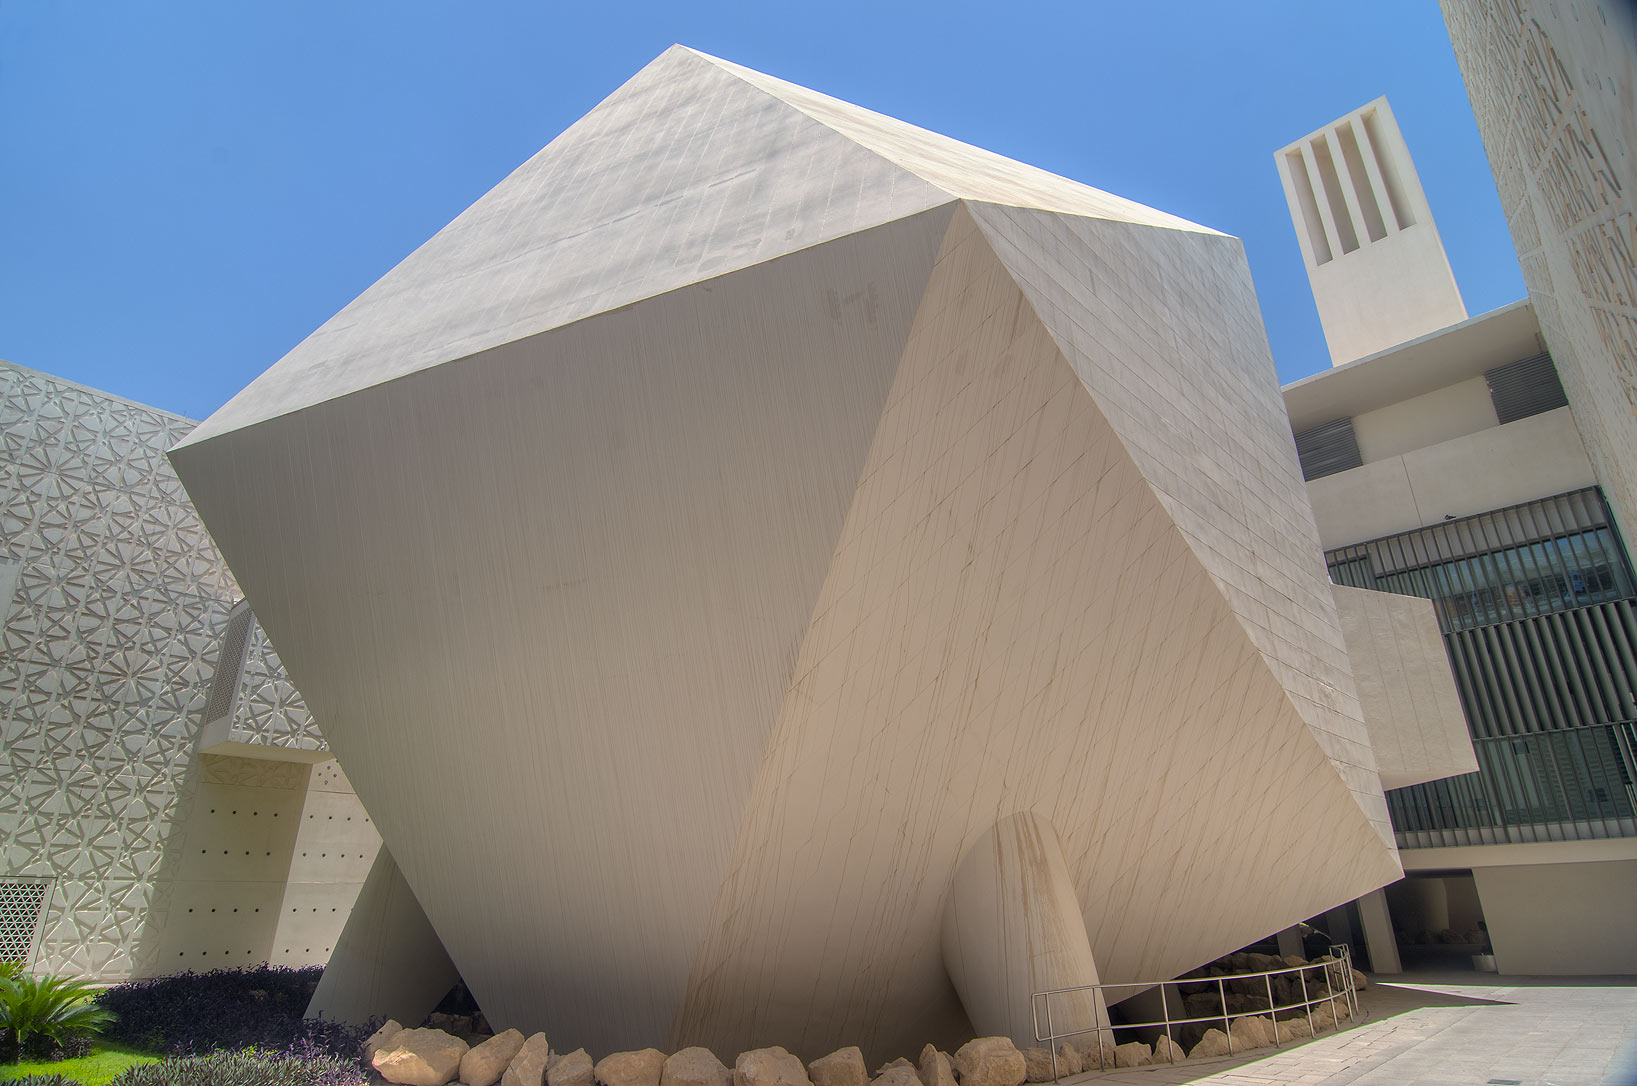 Courtyard with icosahedron lecture hall of Weill...in Education City campus. Doha, Qatar